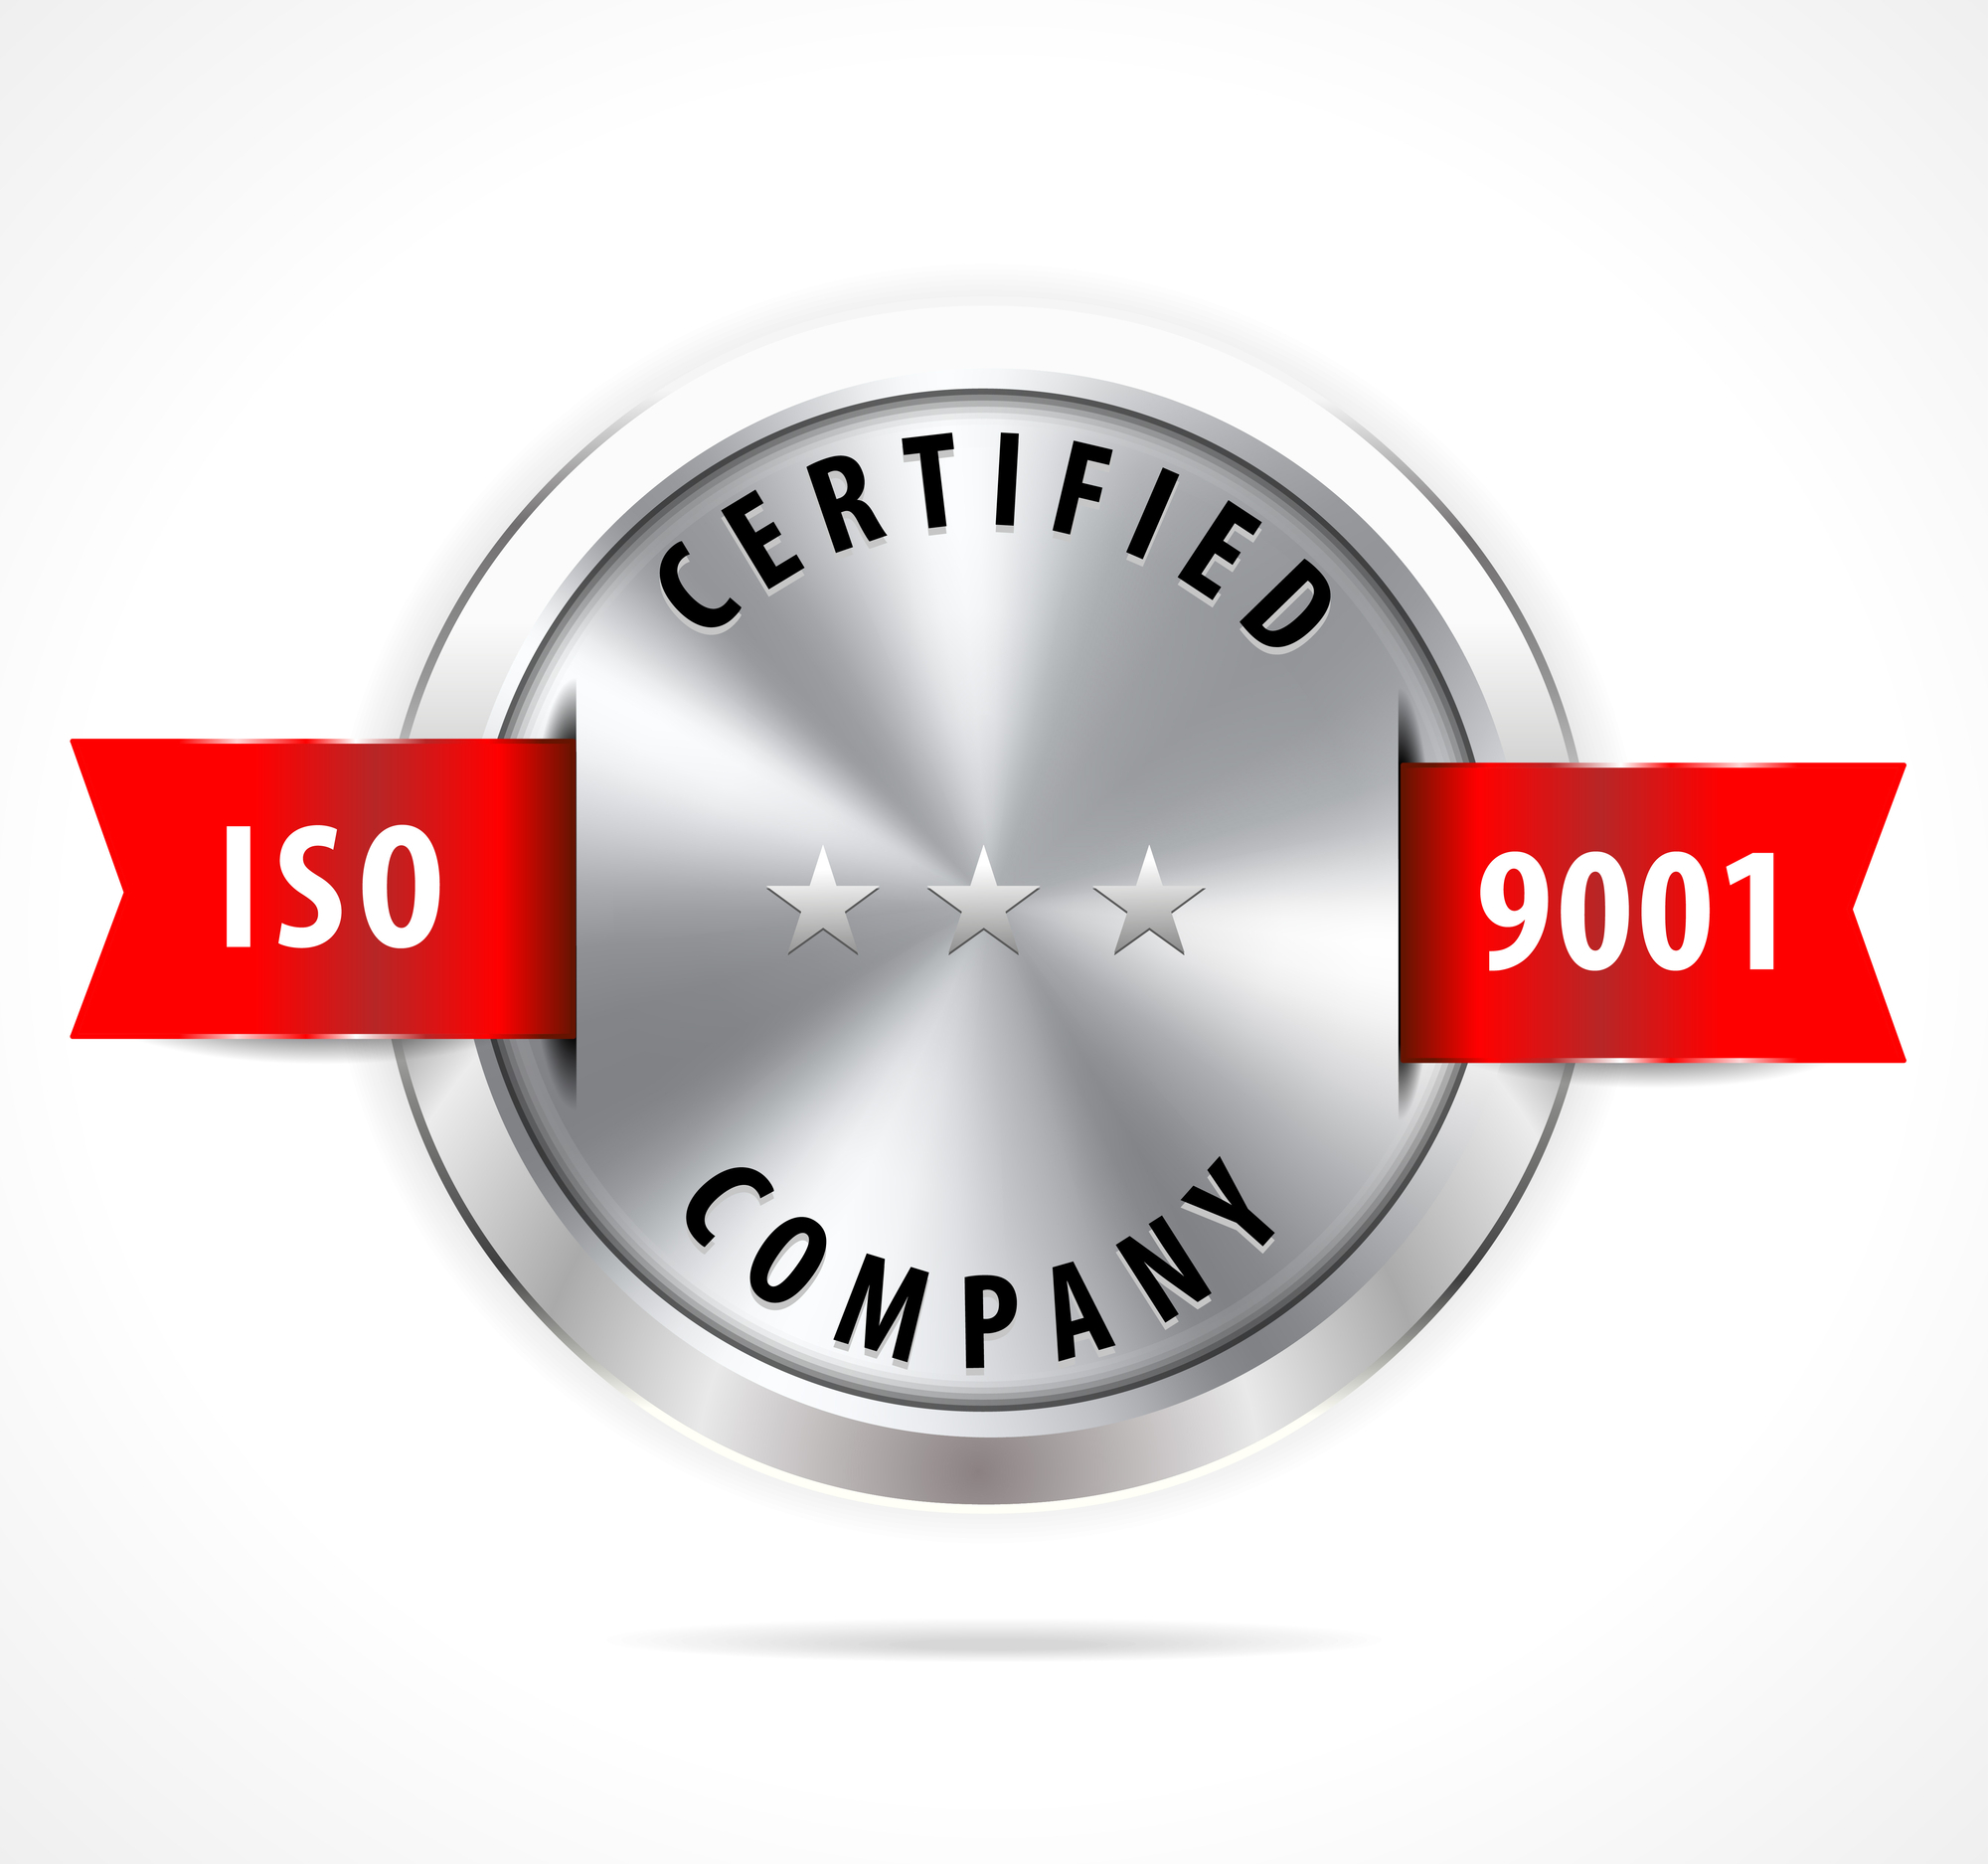 Article - Certifications to Look For in an In-Mold Labeling Company